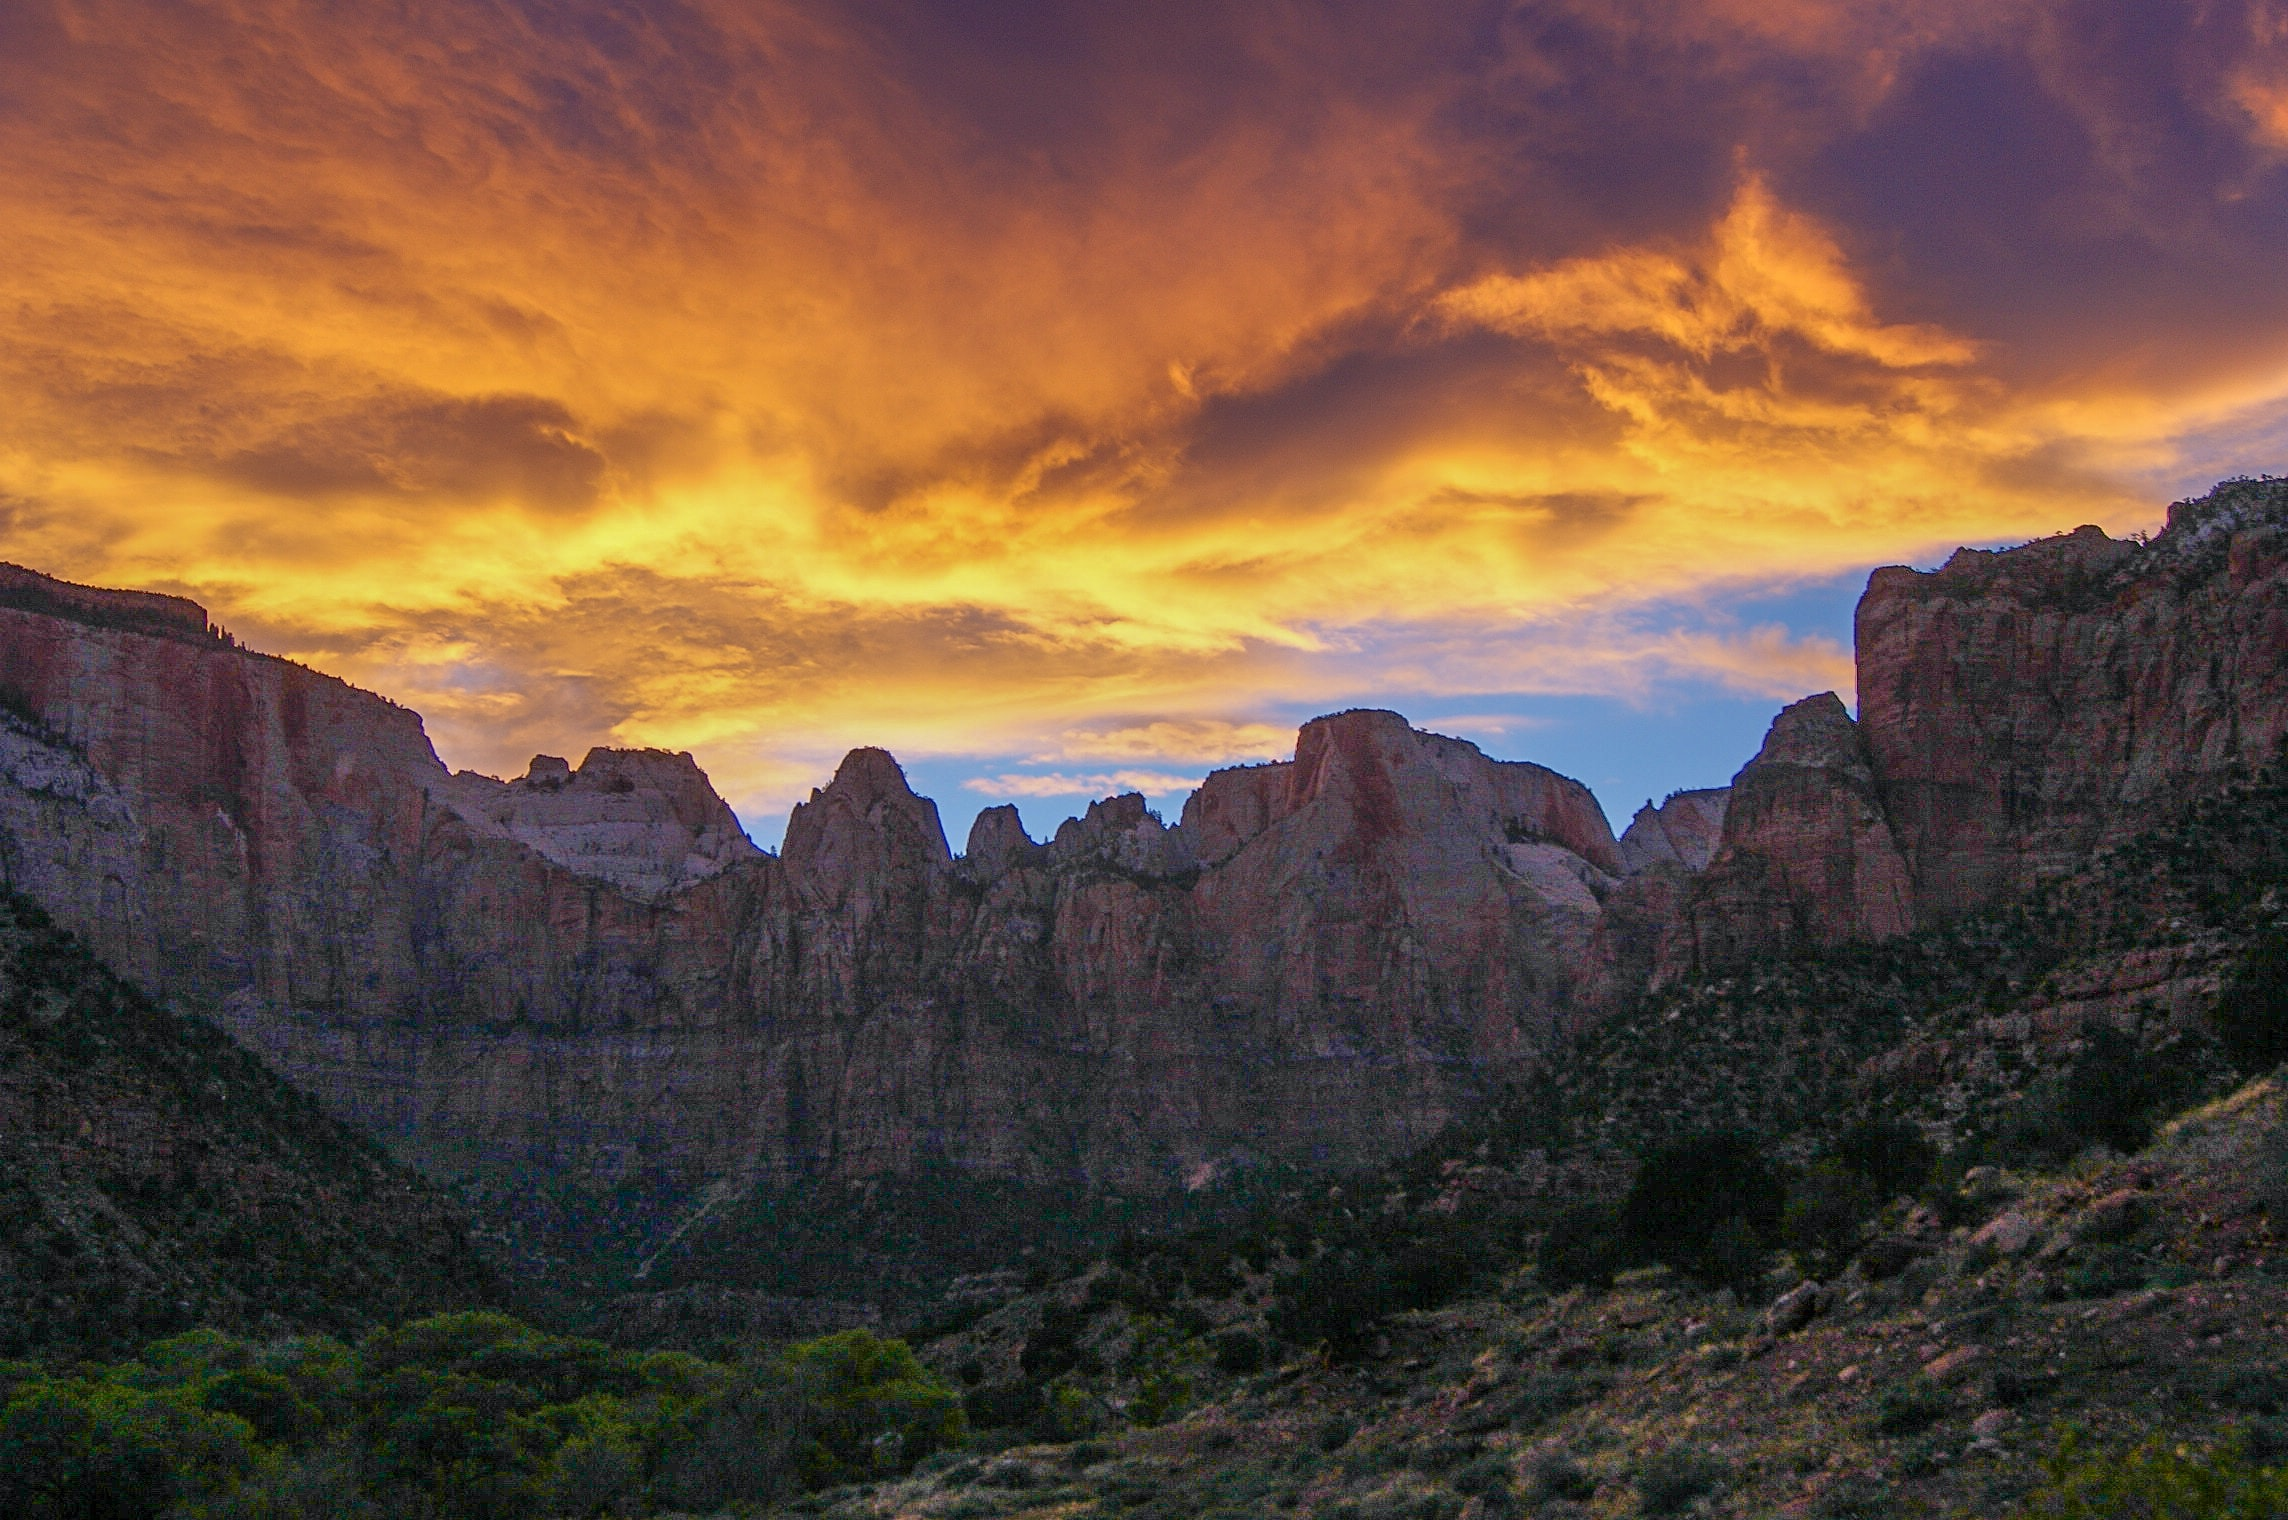 Orange clouds over a rocky mountain landscape in Zion National Park